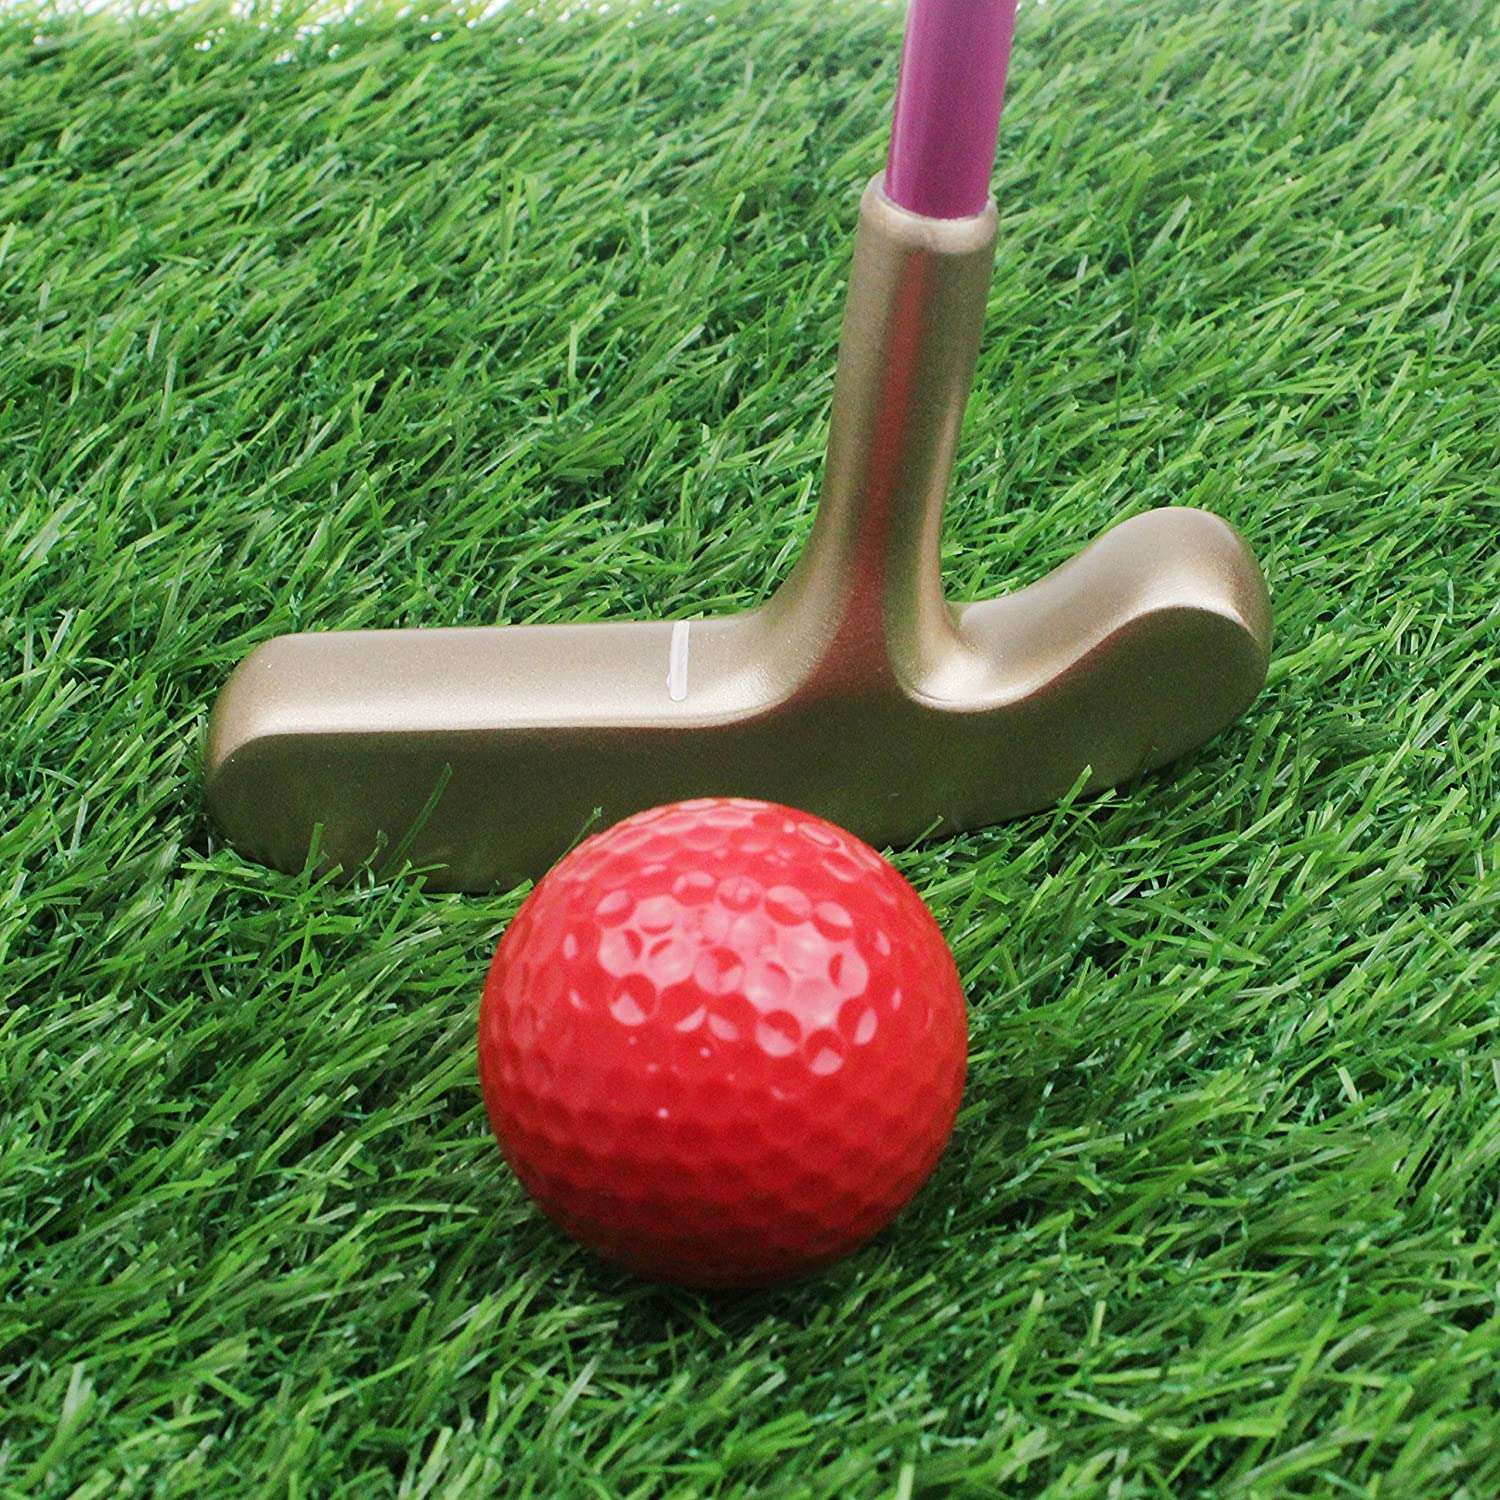 CRESTGOLF Kids Junior Rubber Golf Putter Gold Head with White Shaft and Pink Grip, Double Way, Suitable for Both Right Handed&Left Handed